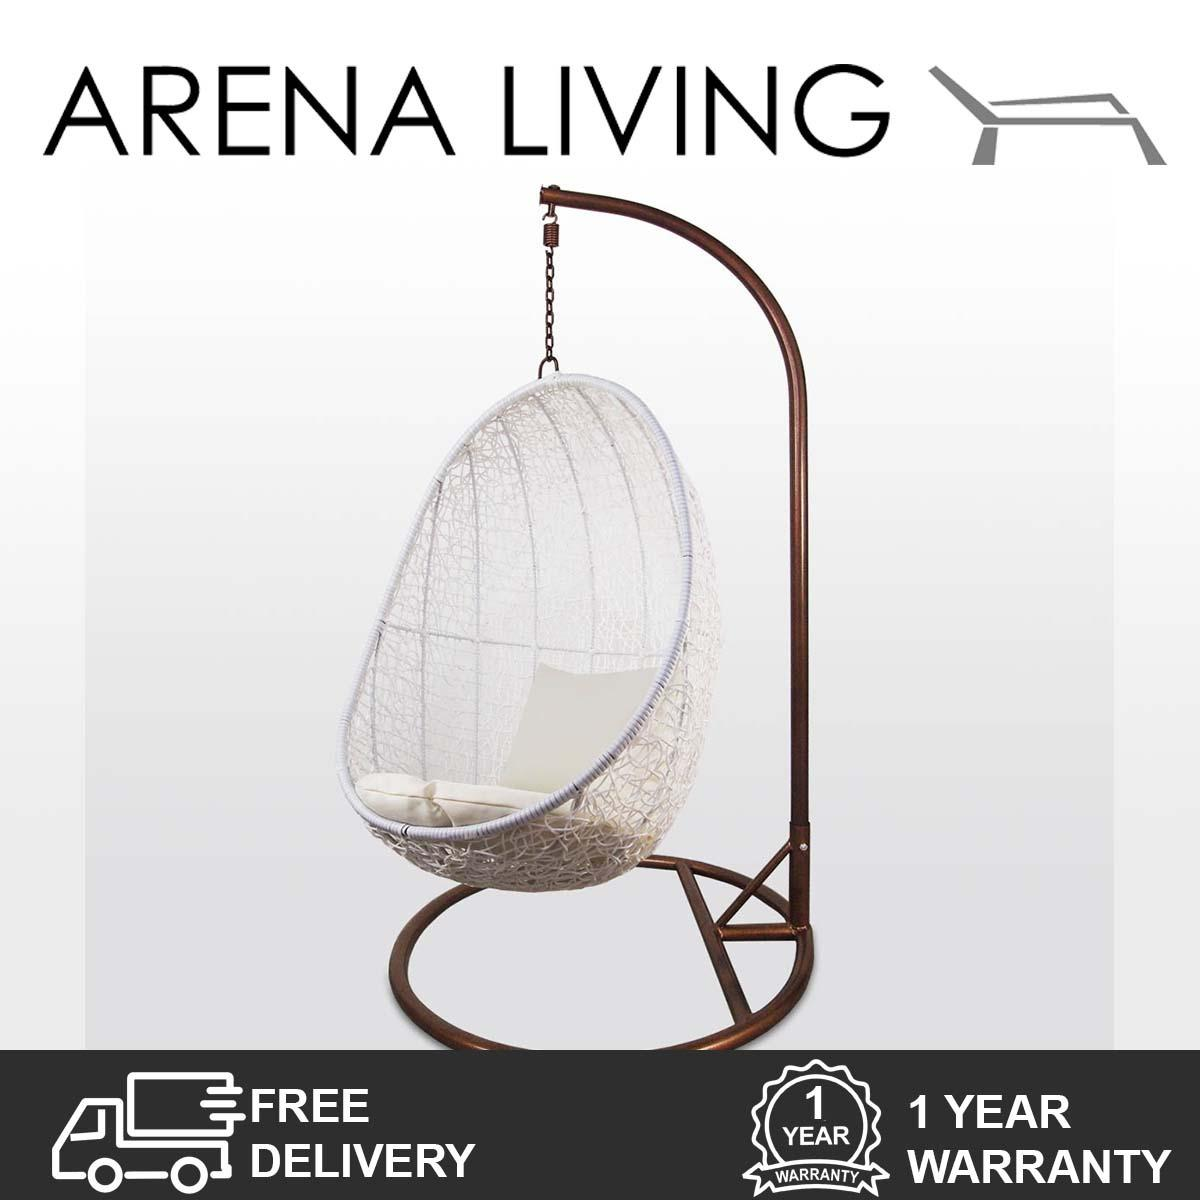 Shop For White Cocoon Swing Chair White Cushion Outdoor Furniture By Arena Living™